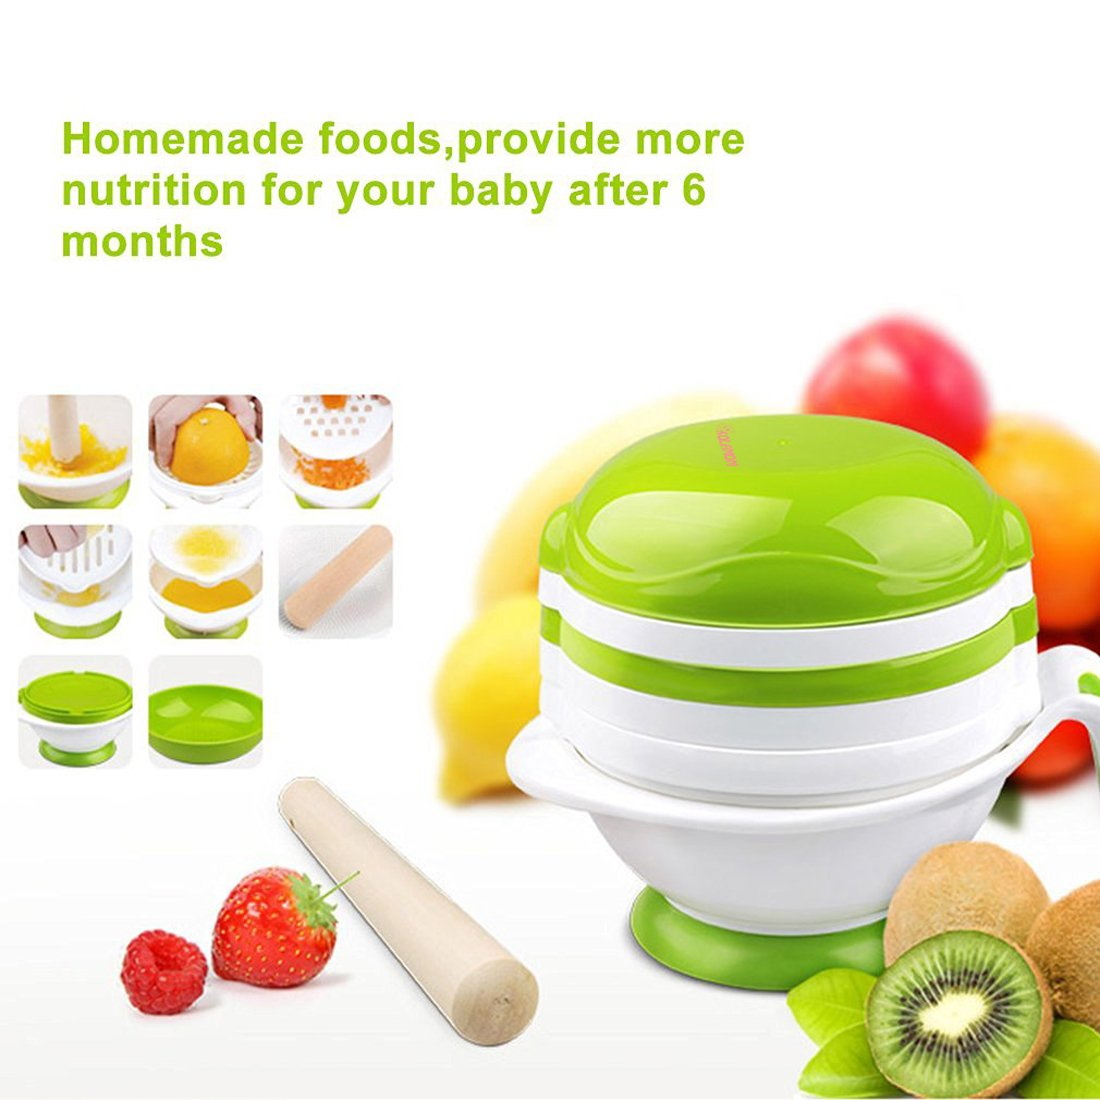 Baby Food Mill Grinding Bowl Grinder Processor Multifunction Mash Prep Serving DIY Homemade 8 in 1 Set by Kolamom, Upgrade